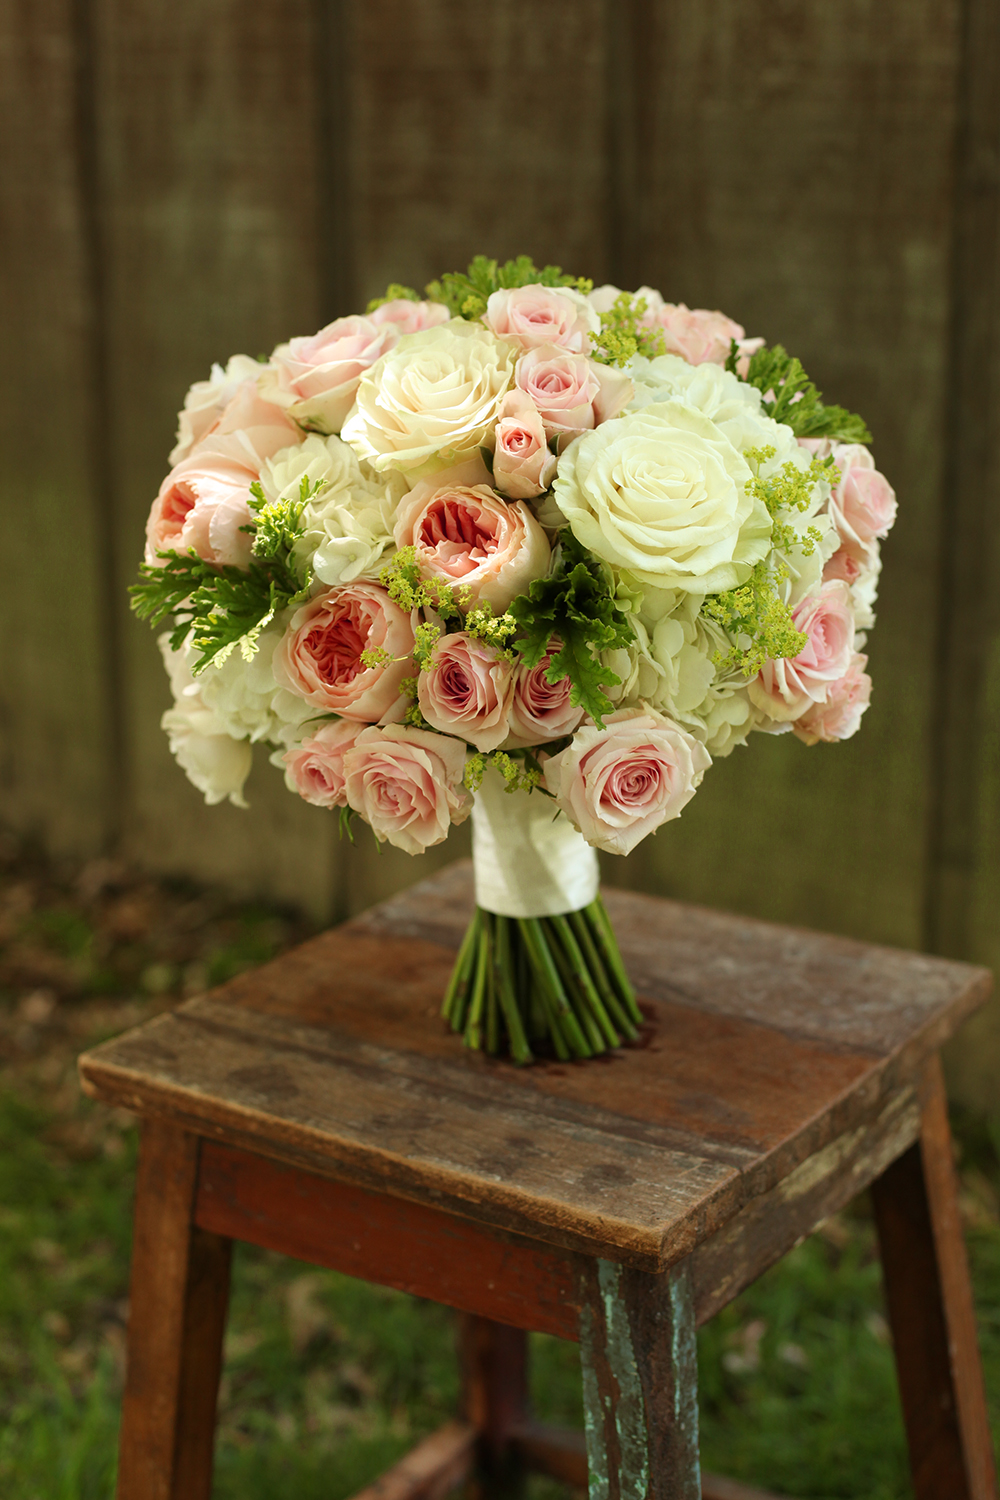 bridal bouquet by wedding florist Floral Verde LLC in Cincinnati, Ohio; with Star Blush spray roses, Juliet garden roses, White Majolica spray roses, Mondial roses, white hydrangea, alchemilla and lacy scented geranium